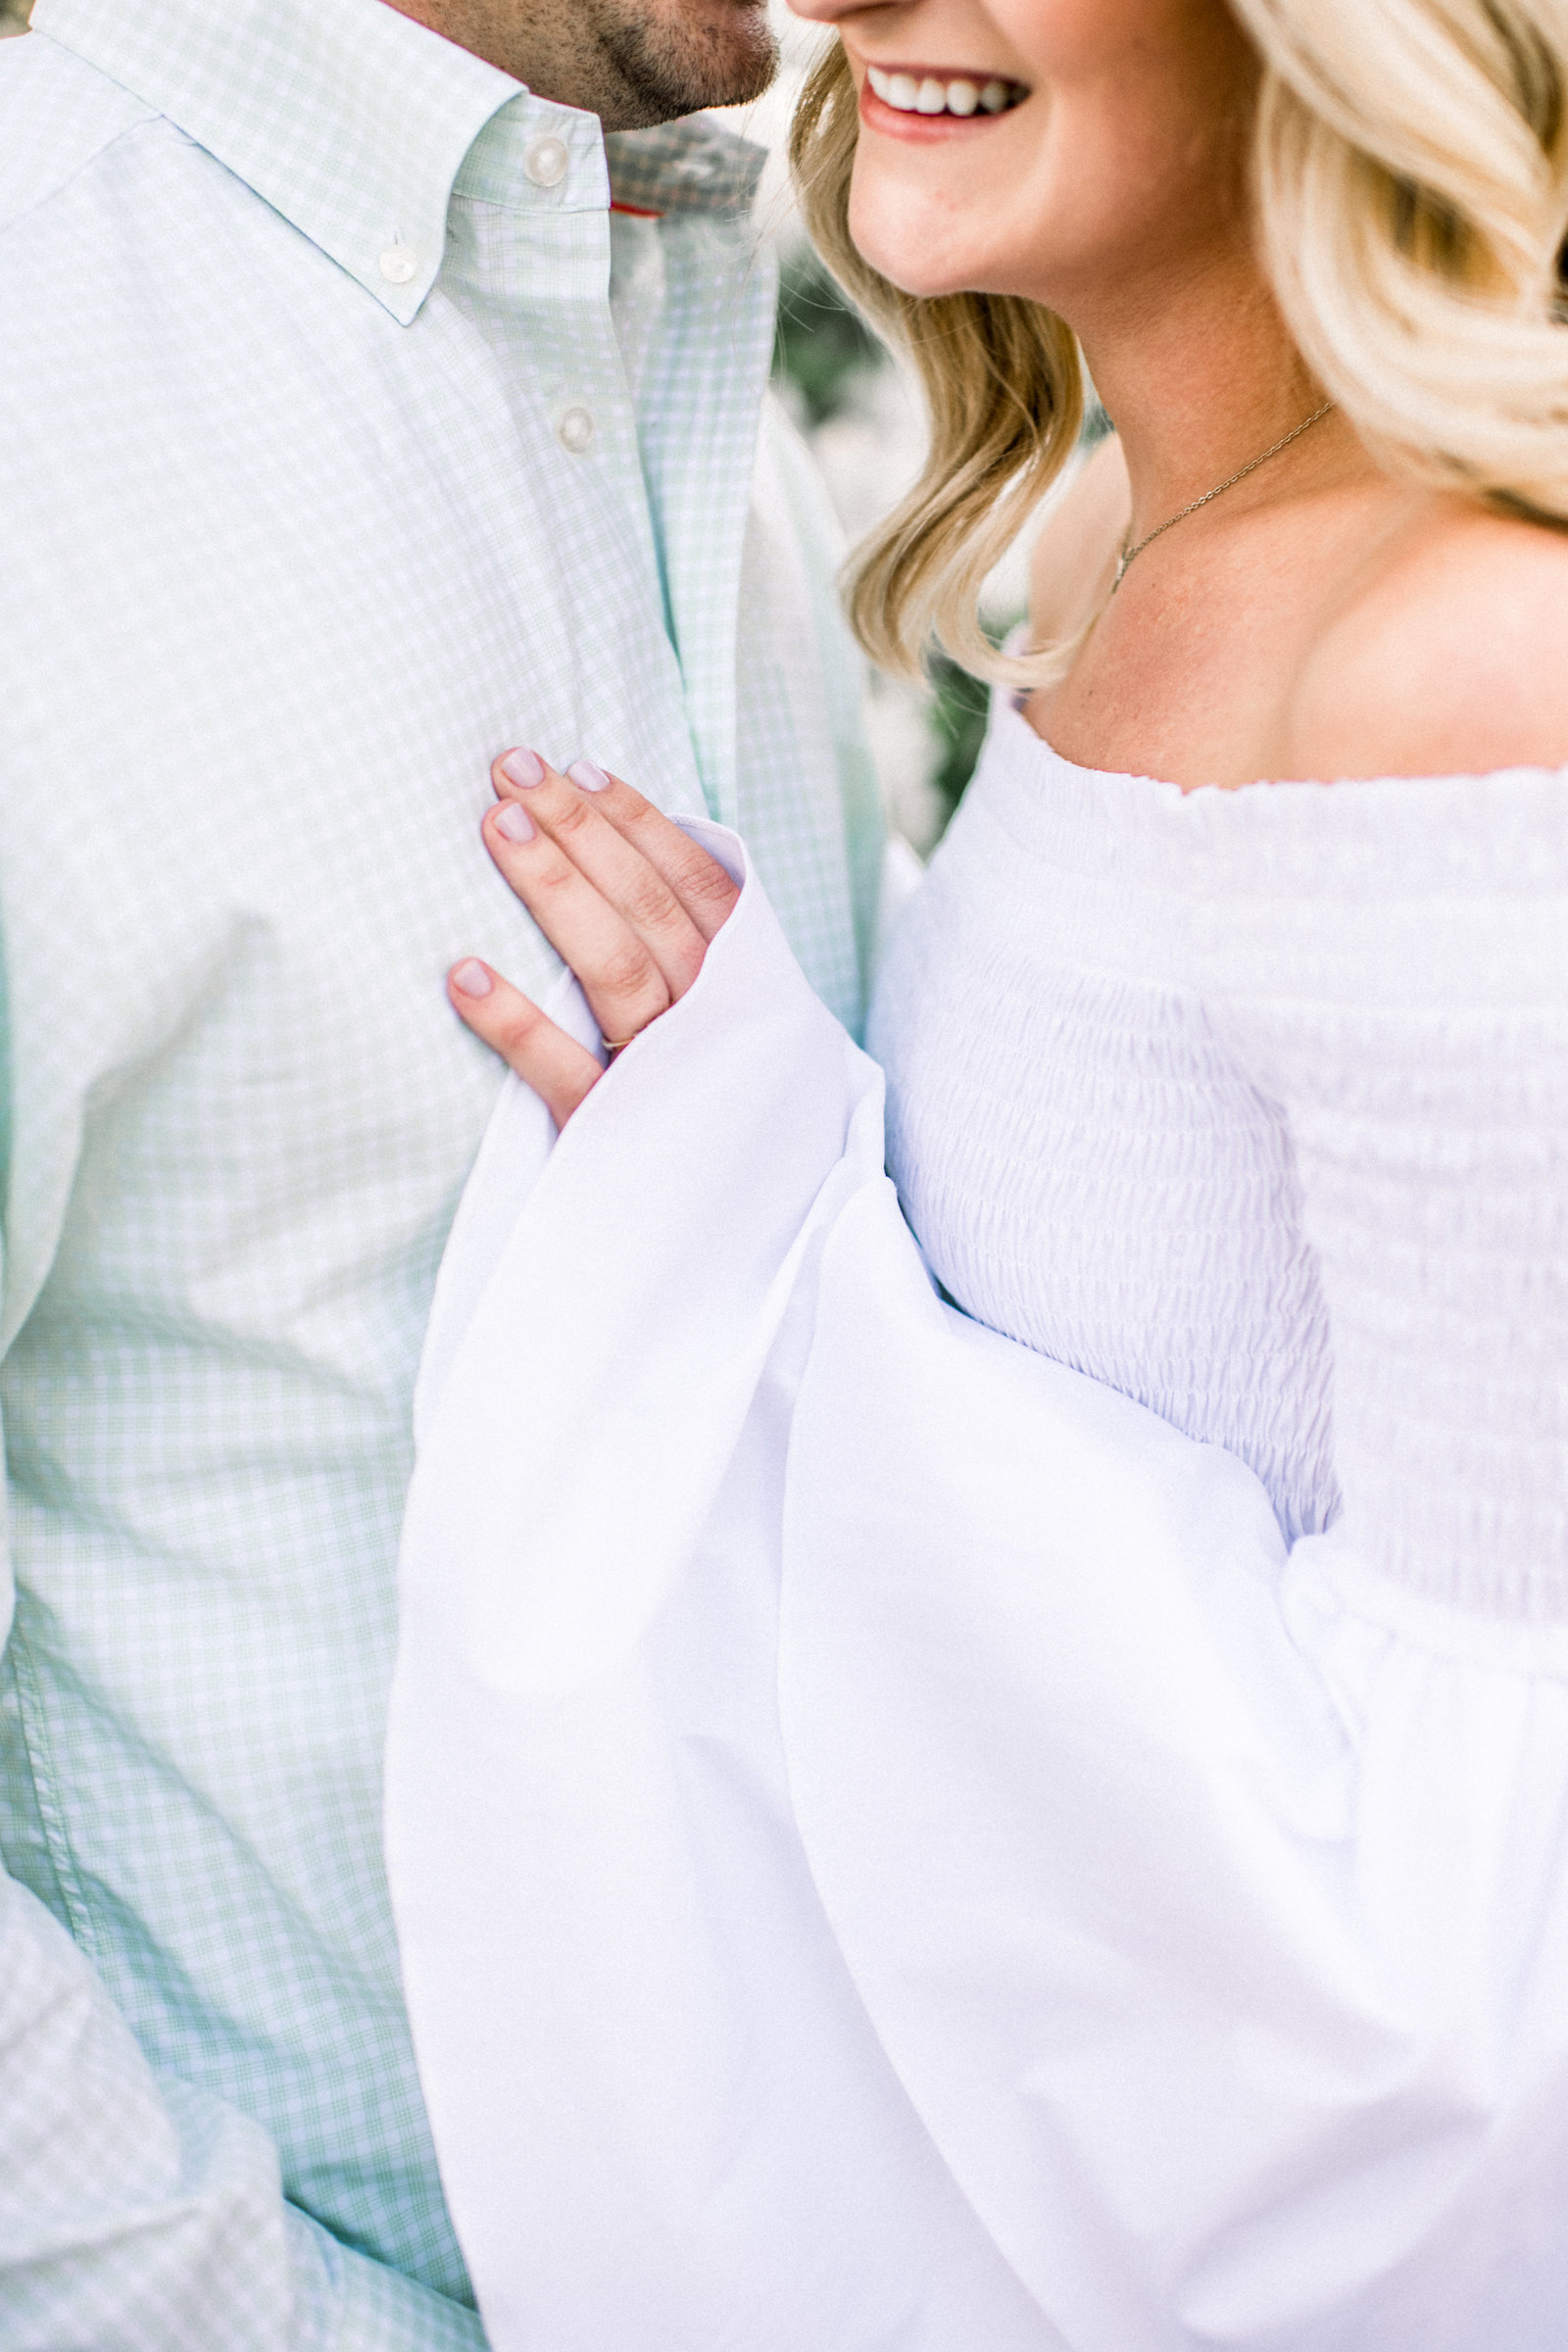 bath_nc_engagements-110